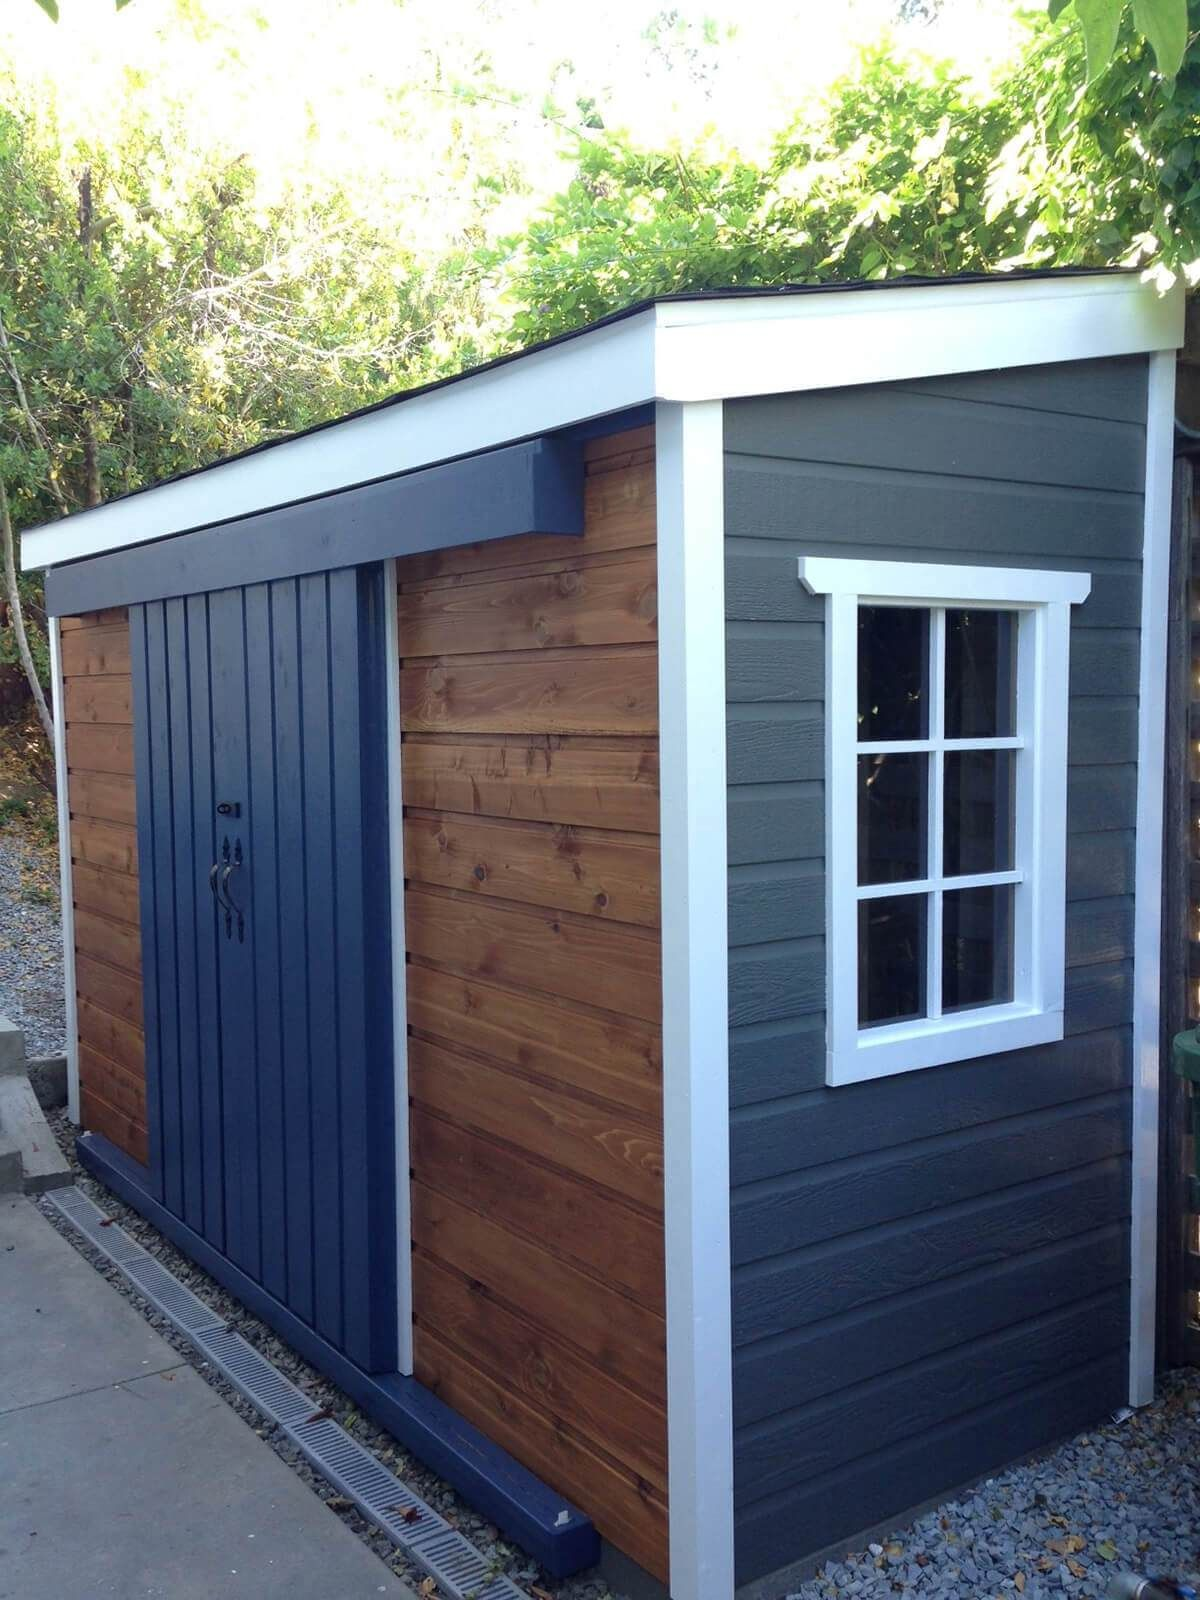 58 cool storage shed ideas for your garden outdoor on garage organization ideas that will save you space keeping things simple id=75532